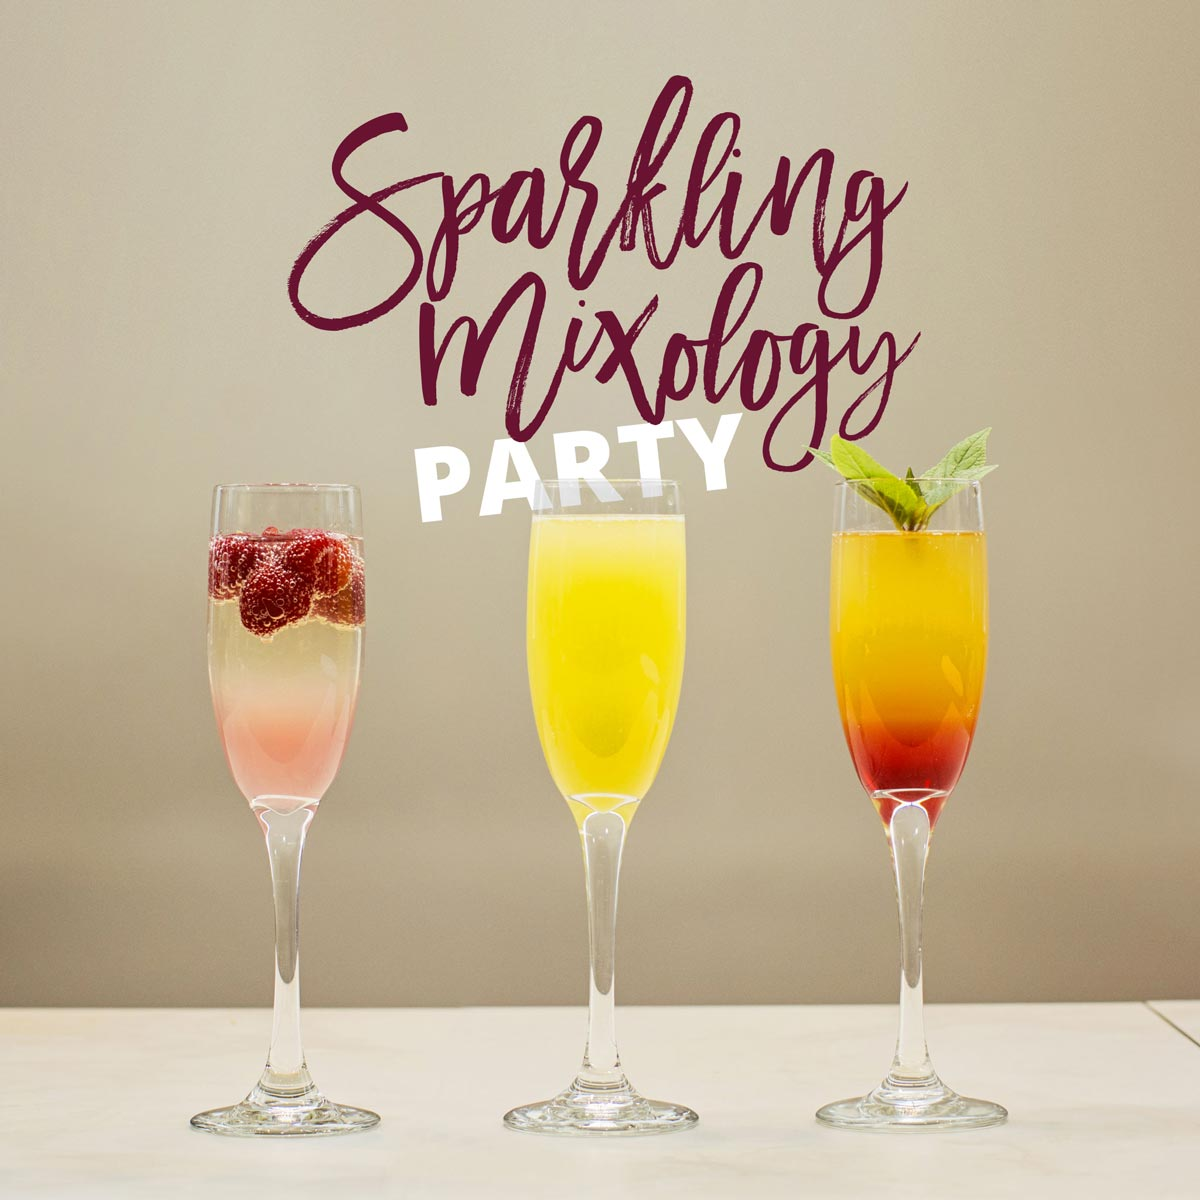 Sparkling Wine Party